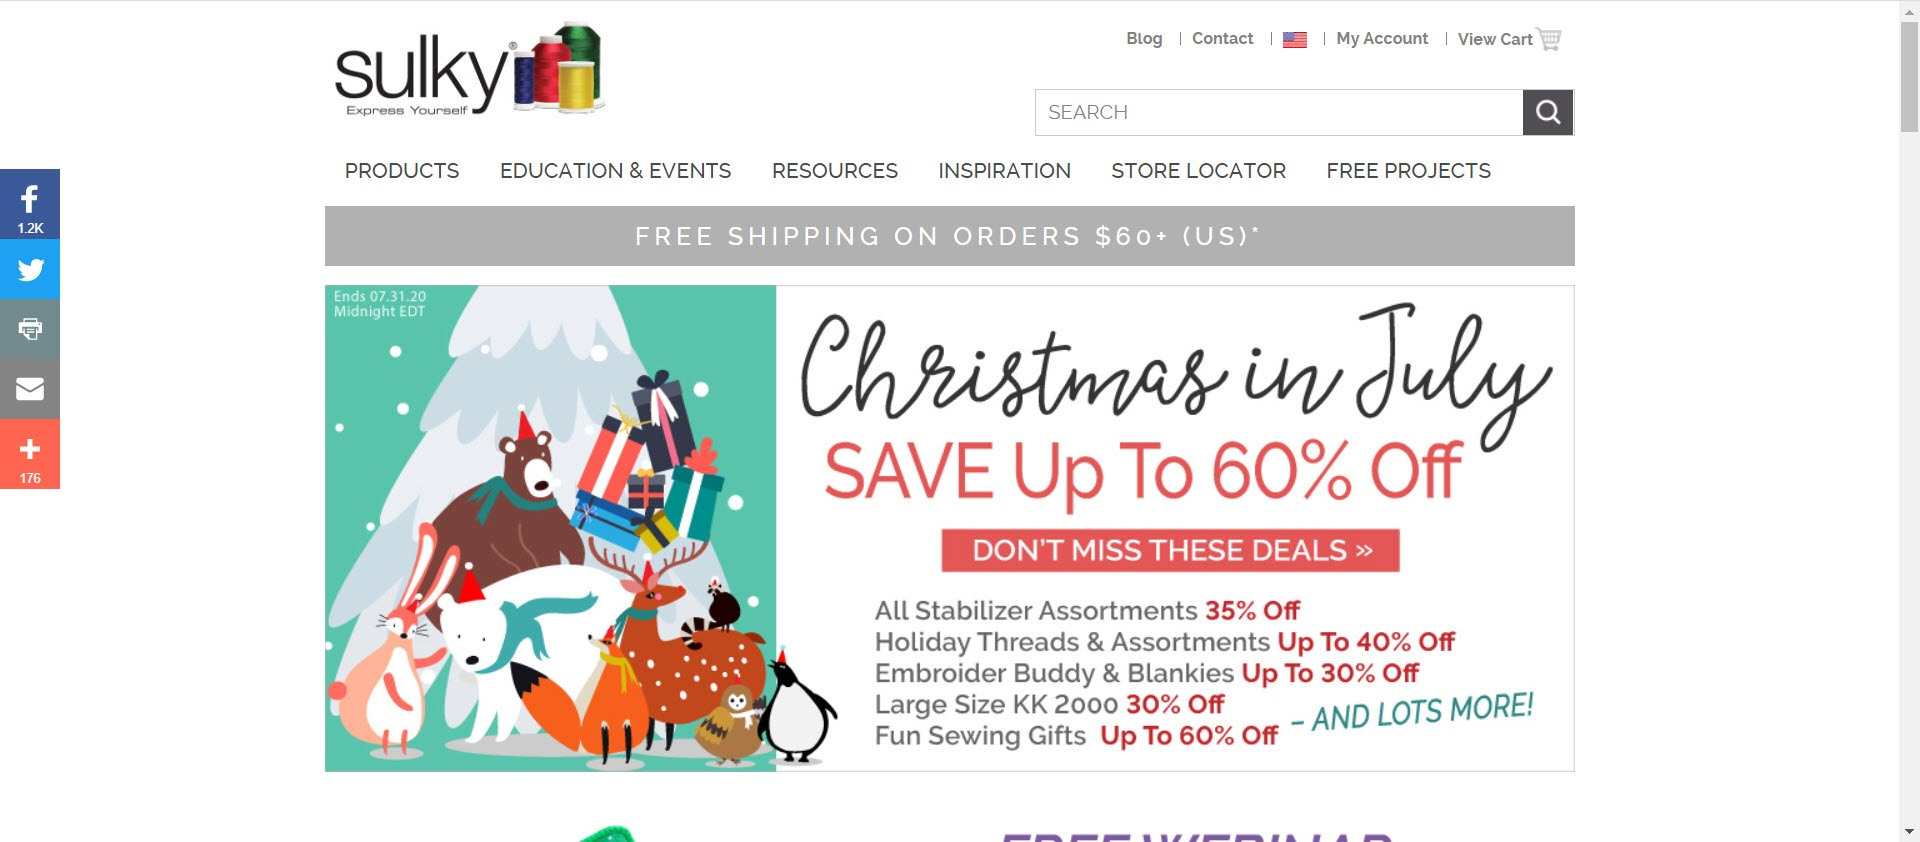 sewing affiliate programs - Sulky